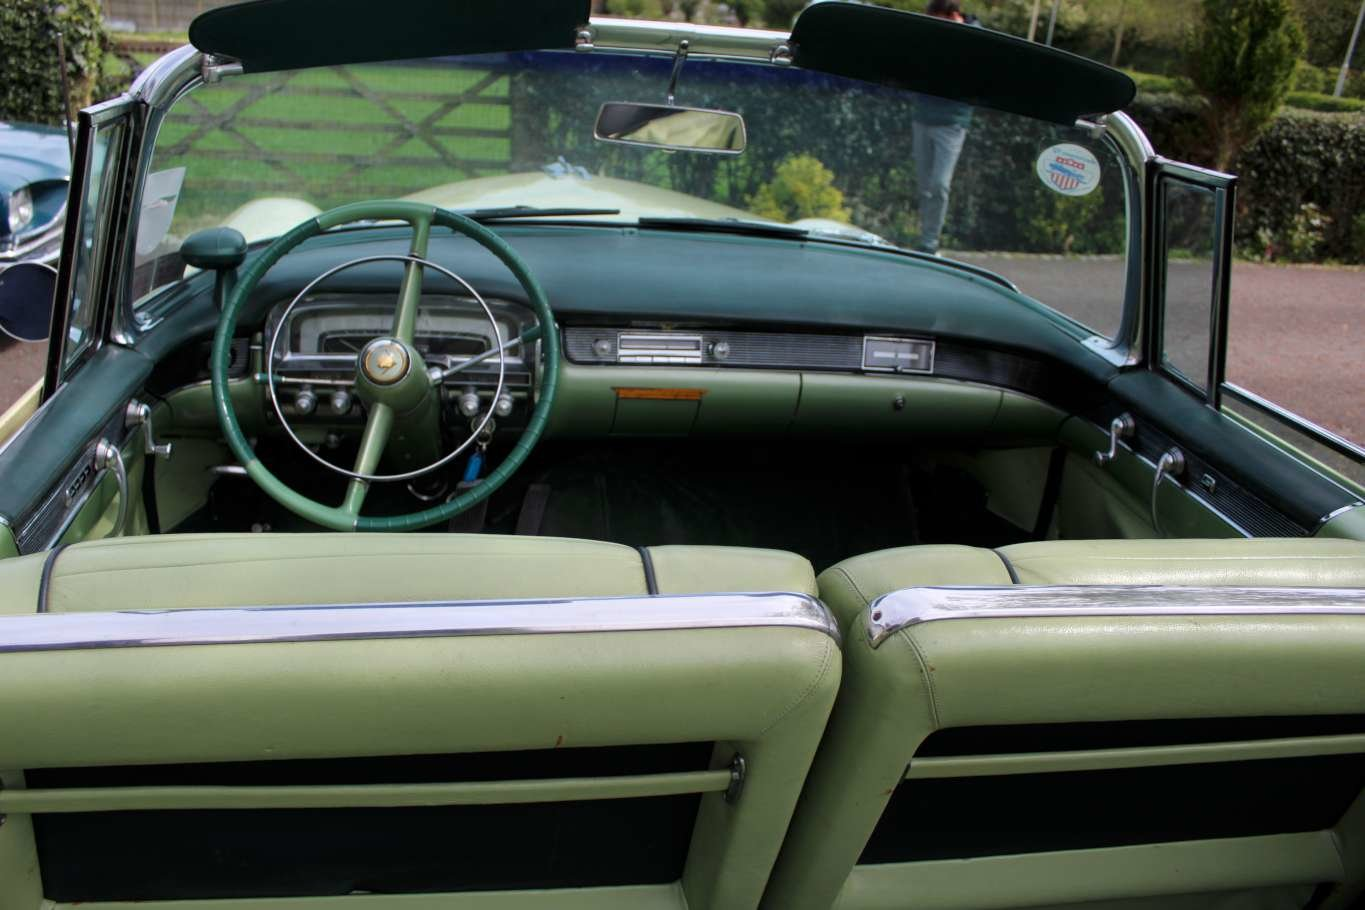 1955 Cadillac Series 62 Convertible over 20 years same owner For Sale (picture 4 of 6)